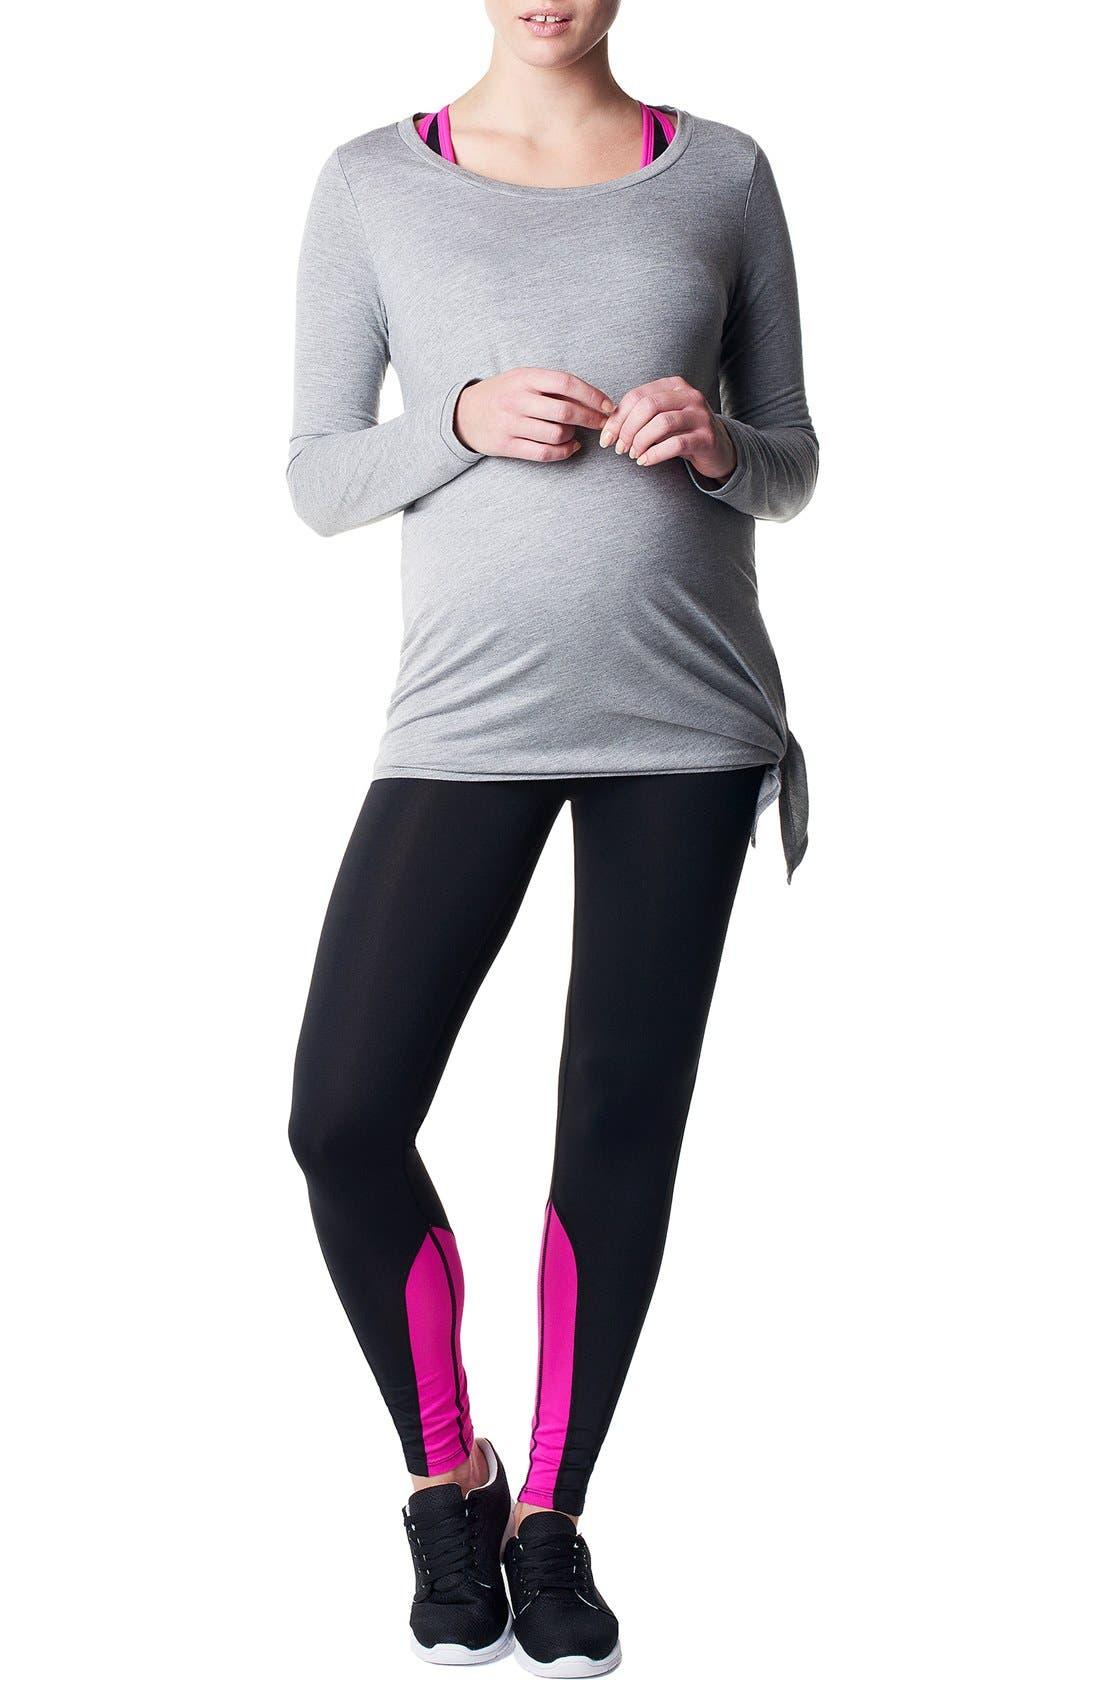 Noppies 'Heather' Athletic Long Sleeve Maternity Top